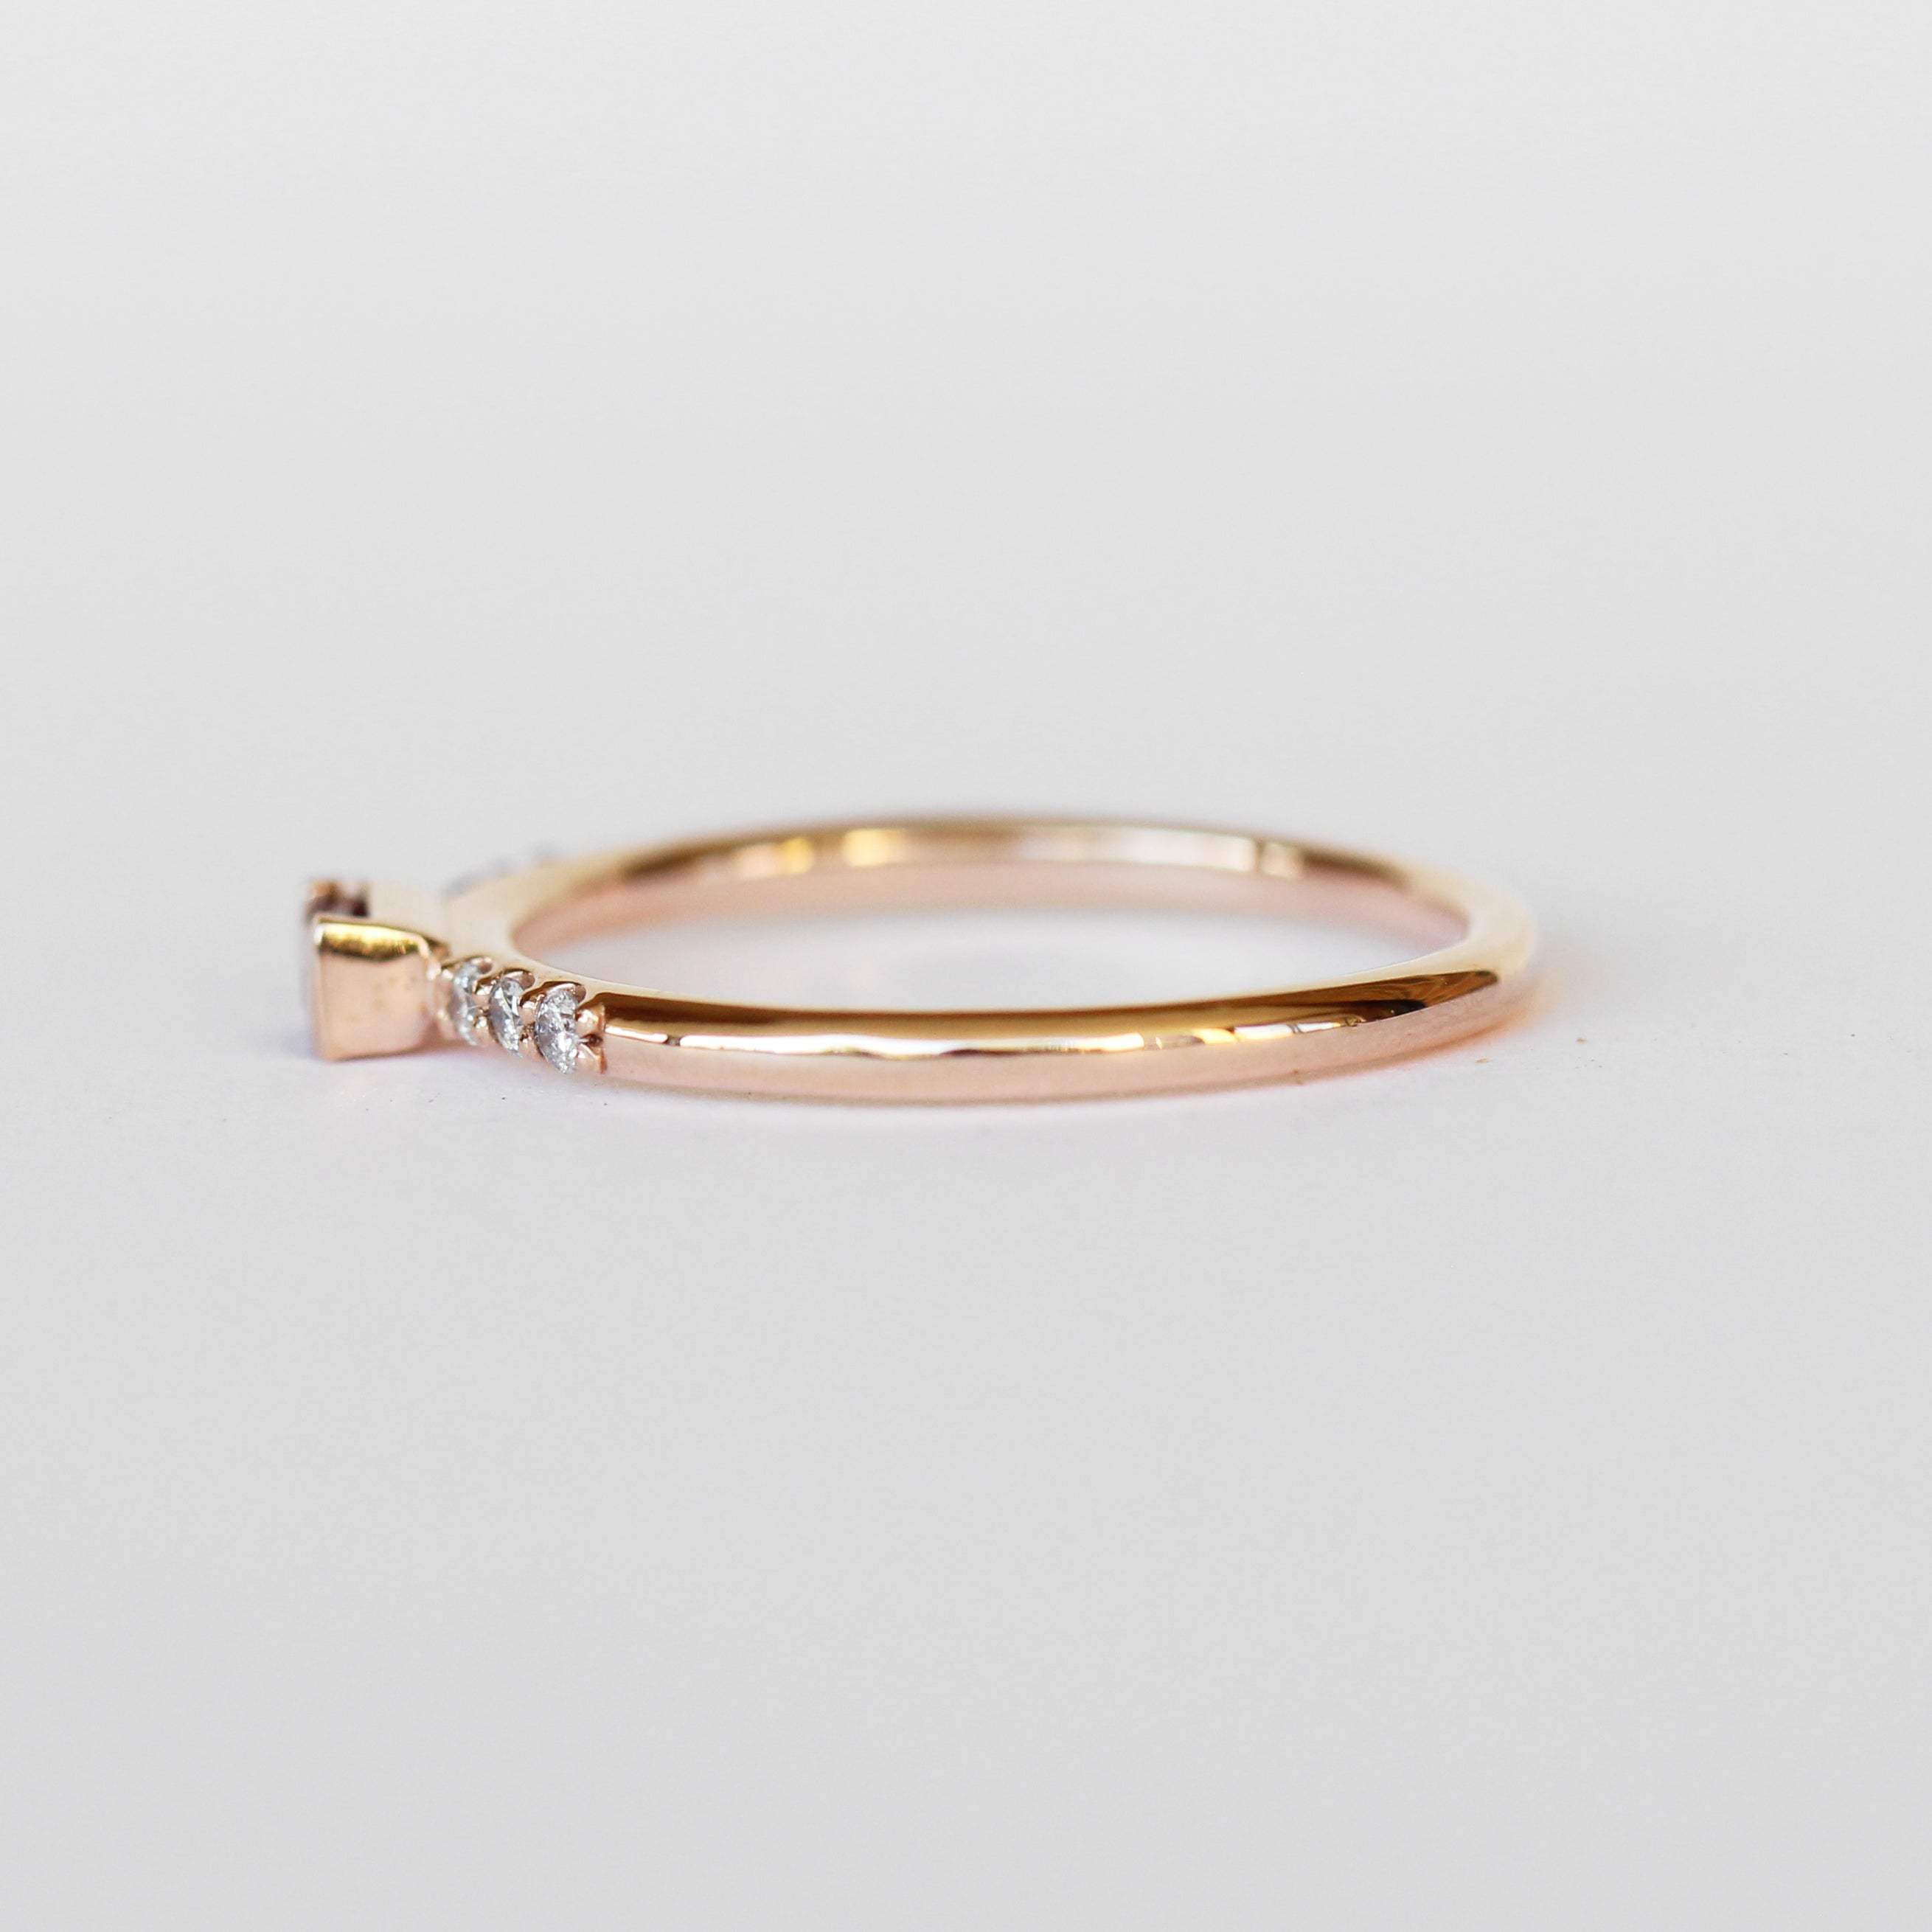 Summer Stacking Ring with Garnet and White Diamonds in 10k Rose Gold - Ready to Size and Ship - Midwinter Co. Alternative Bridal Rings and Modern Fine Jewelry